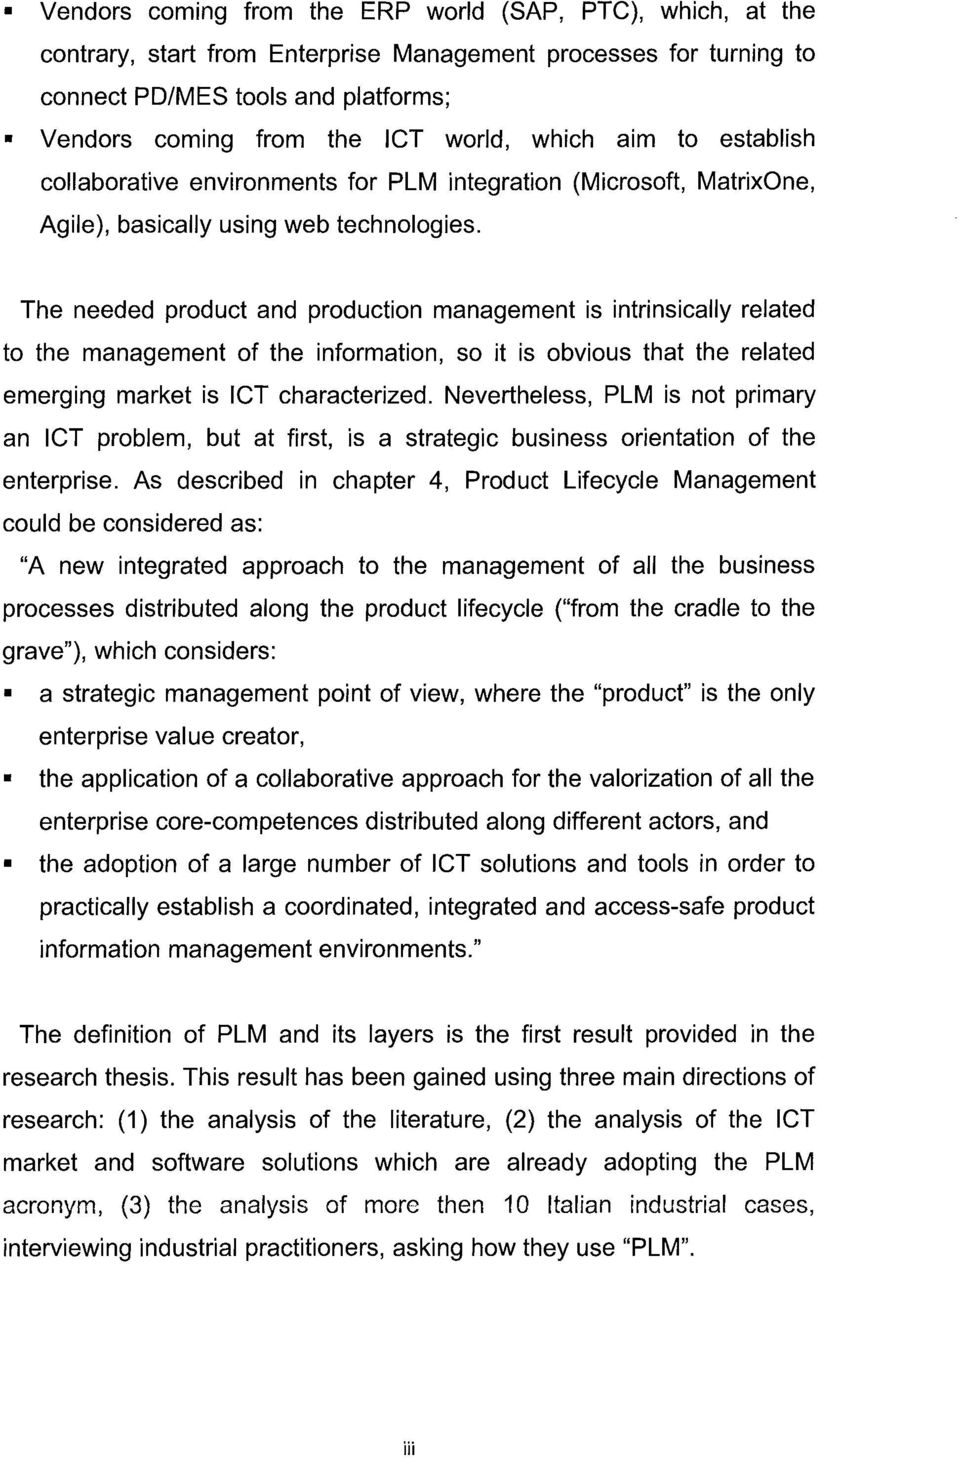 The needed product and production management is intrinsically related to the management of the information, so it is obvious that the related emerging market is ICT characterized.